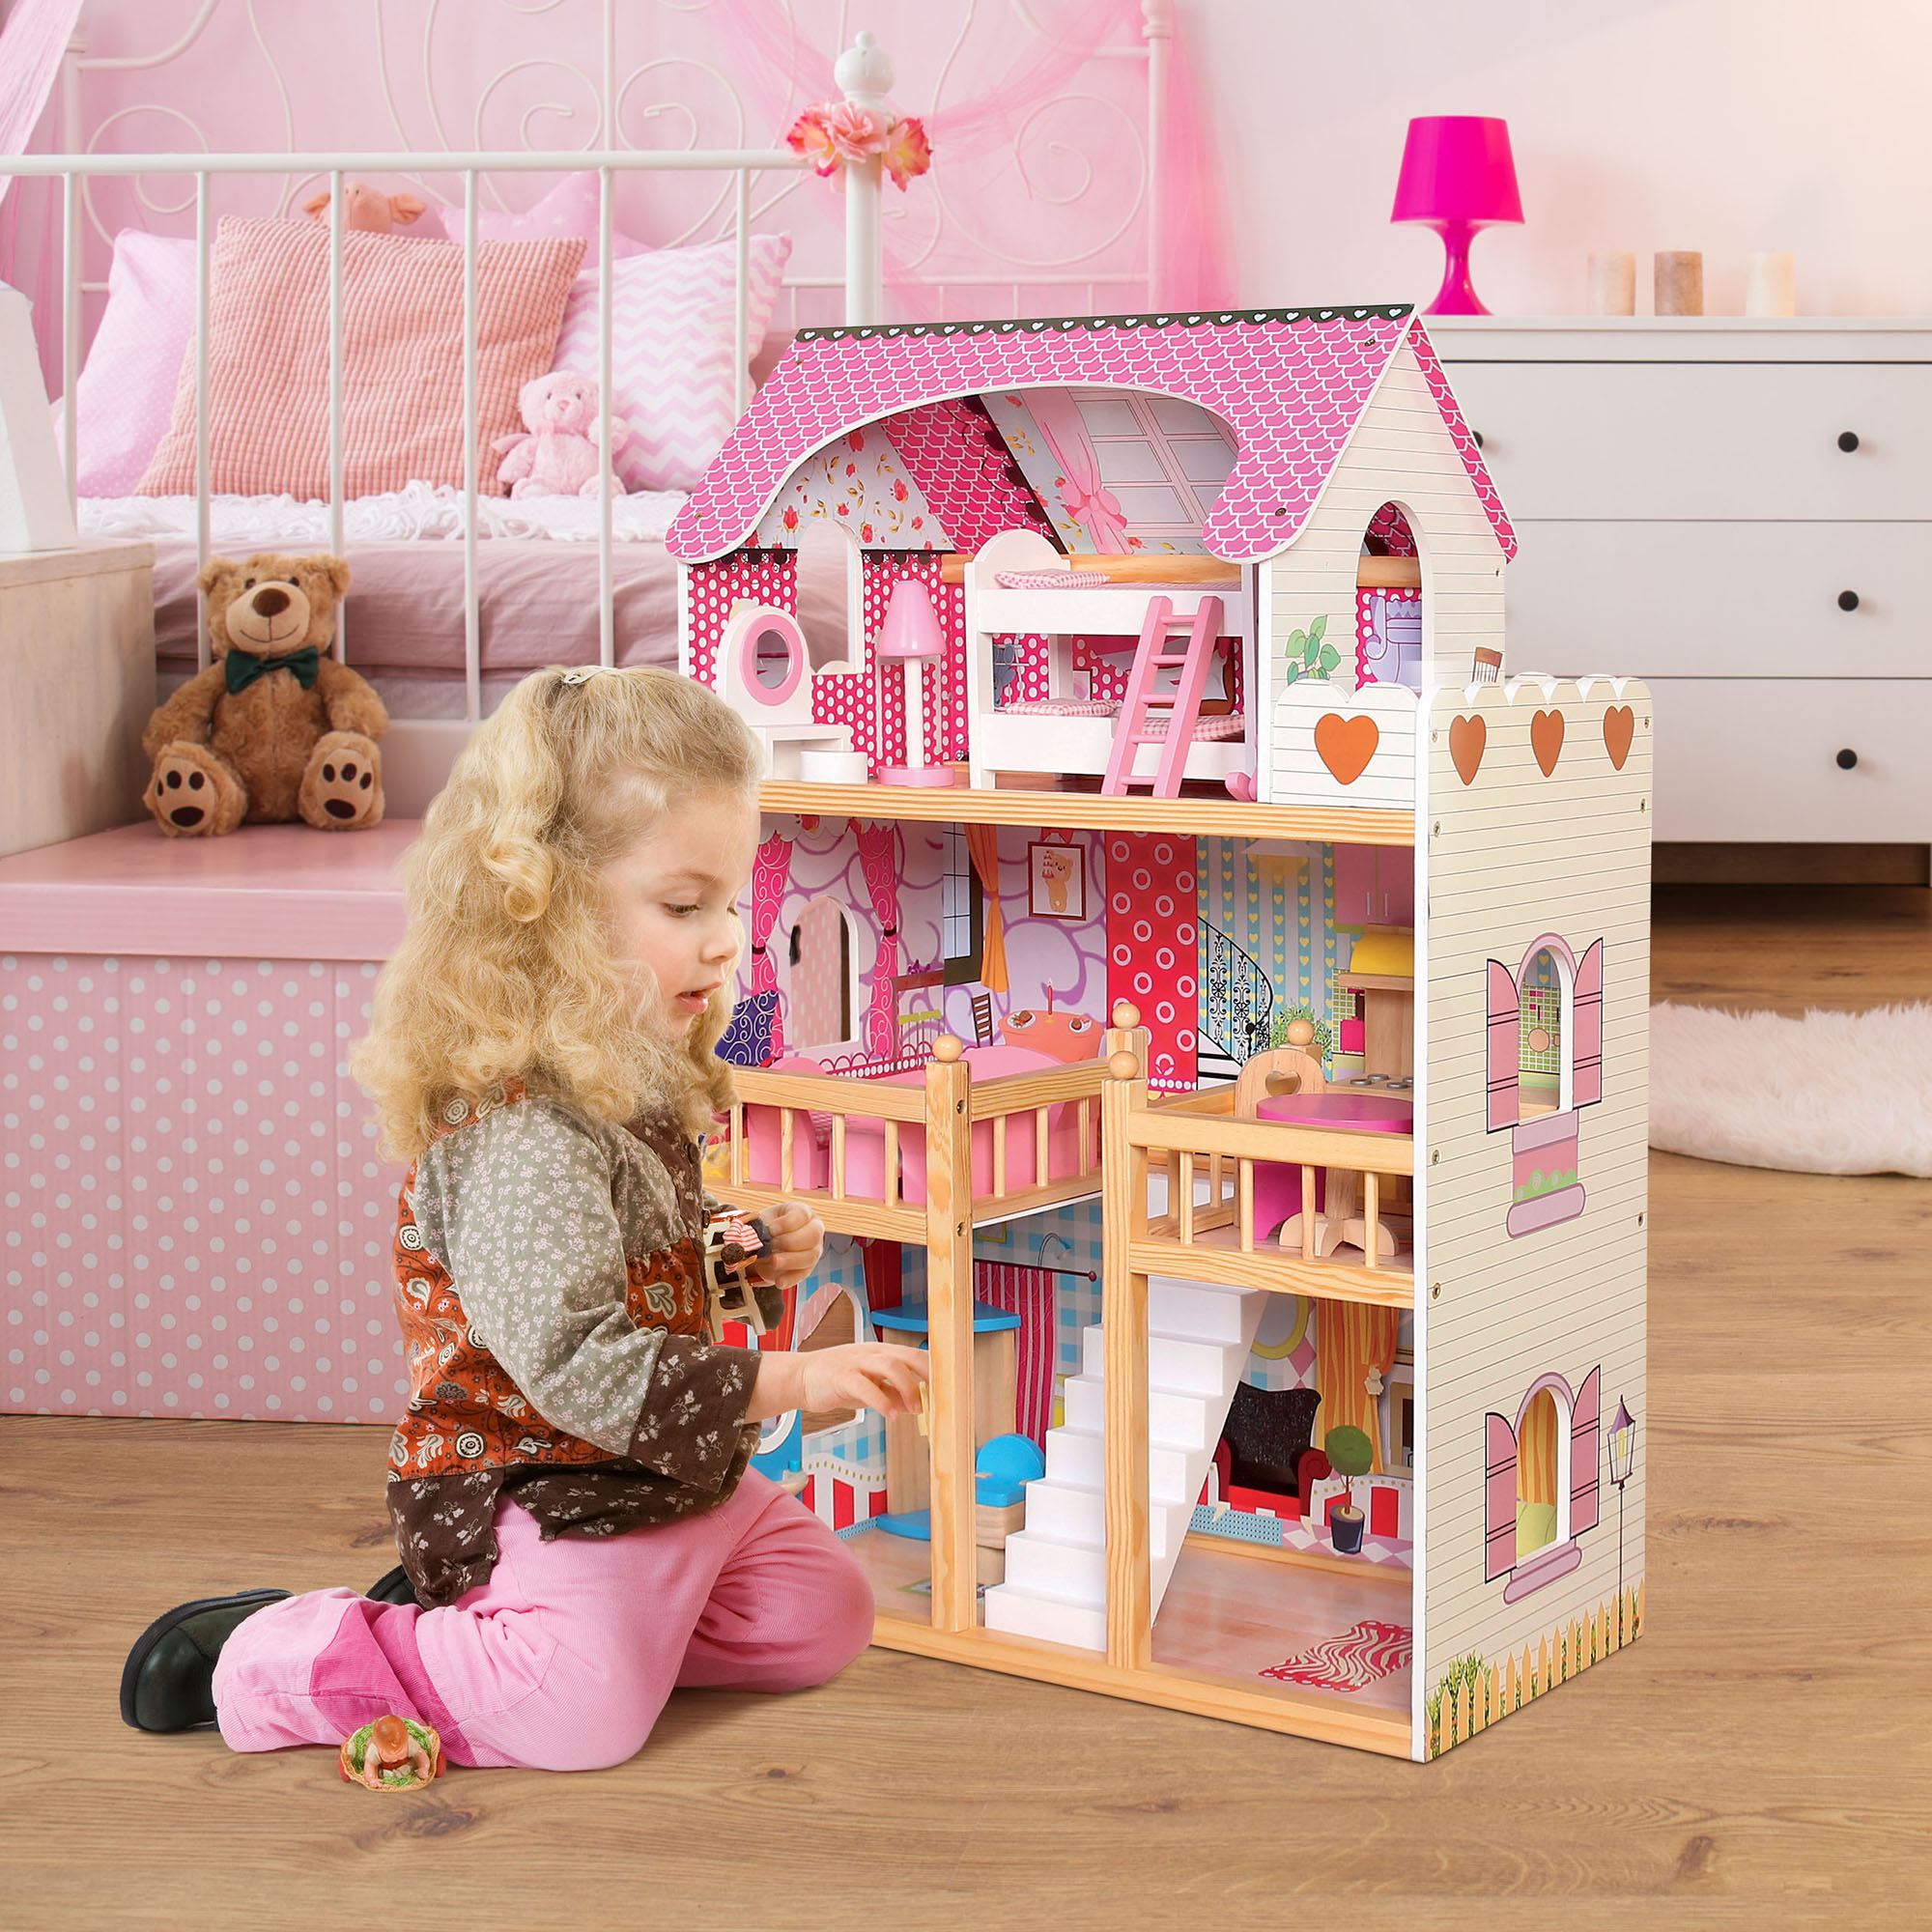 Dolls House Large Wooden Kids Play Dollhouse With Furniture